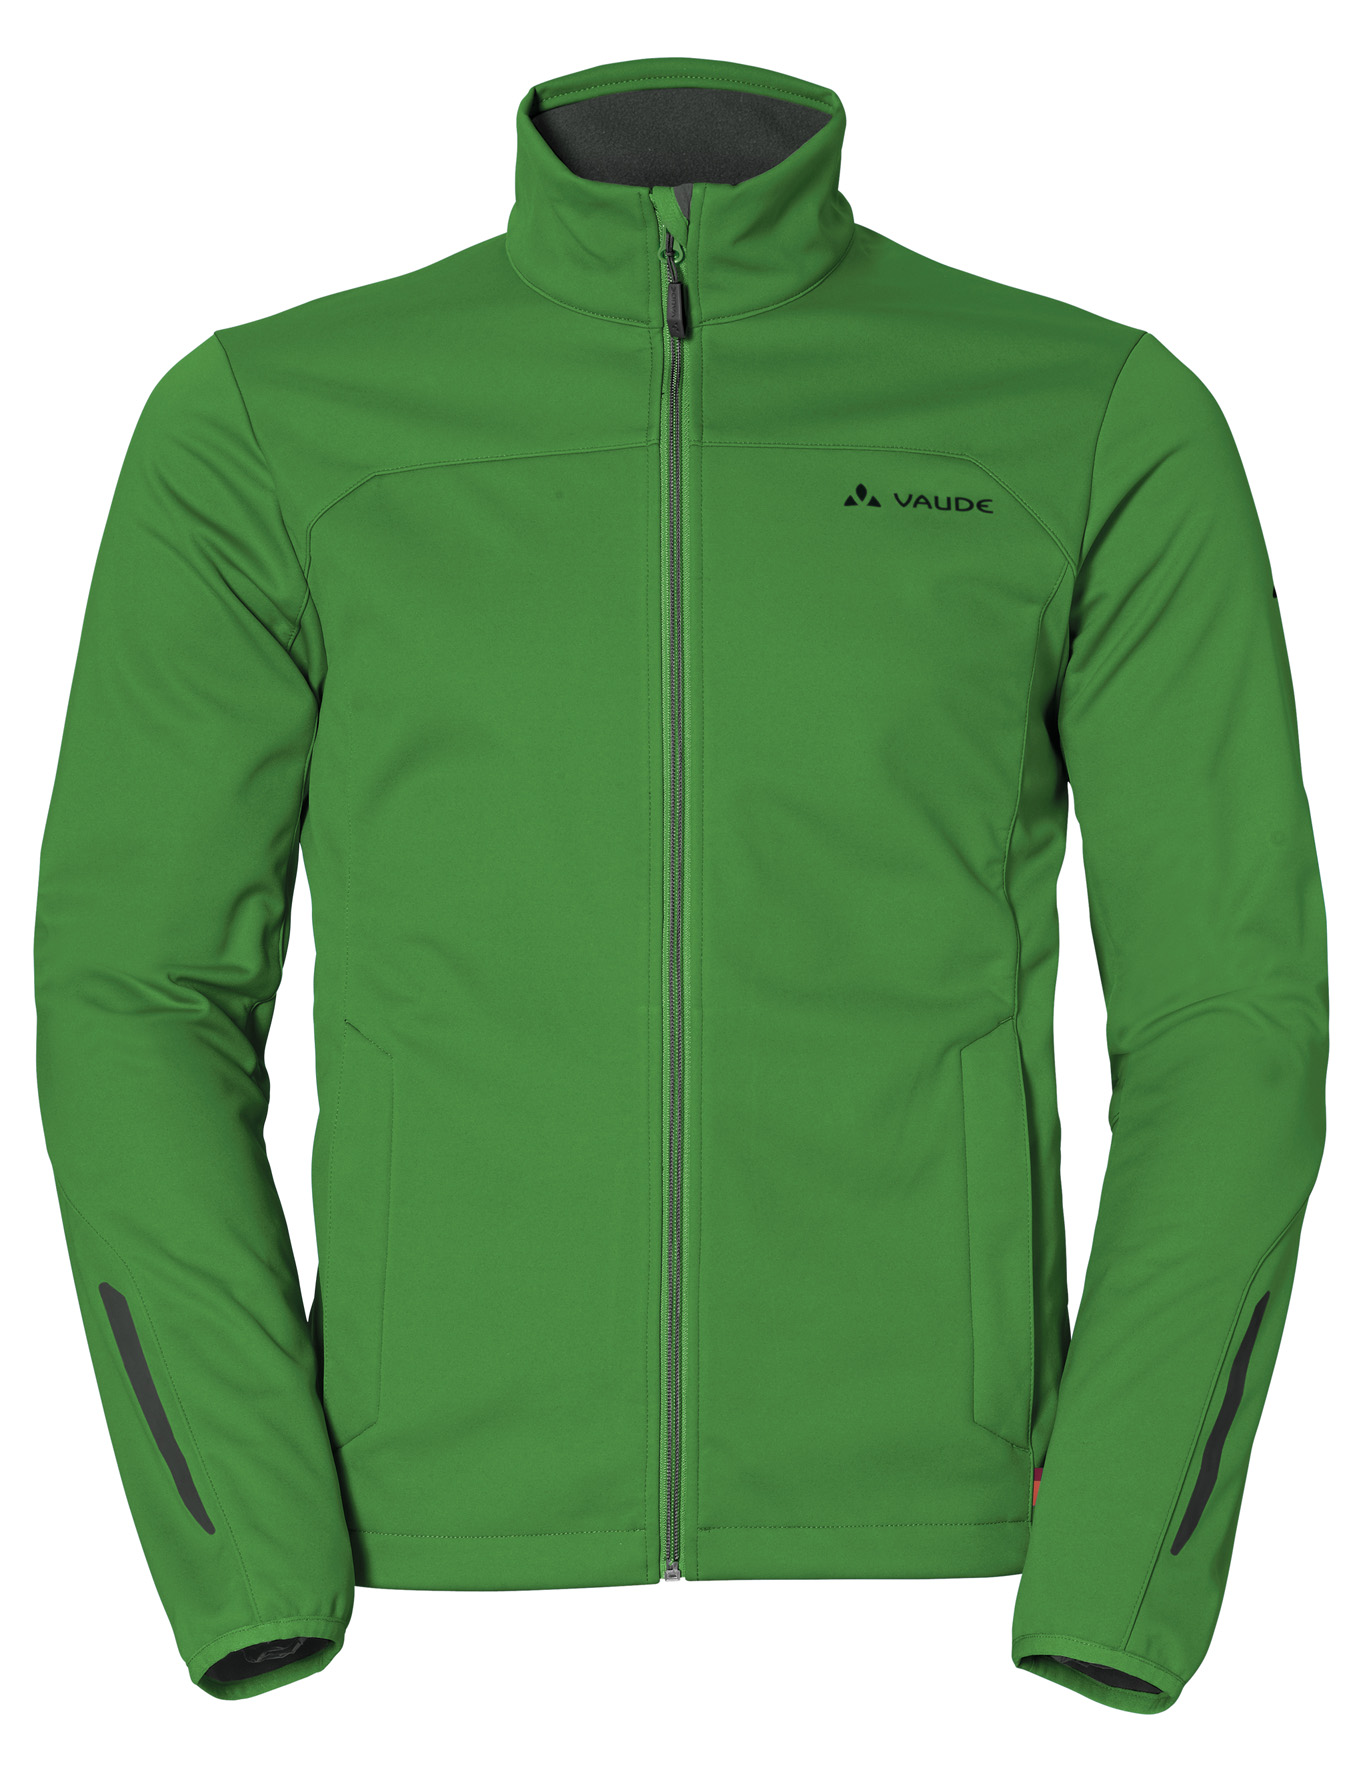 VAUDE Men´s Wintry Jacket III parrot green Größe S - schneider-sports